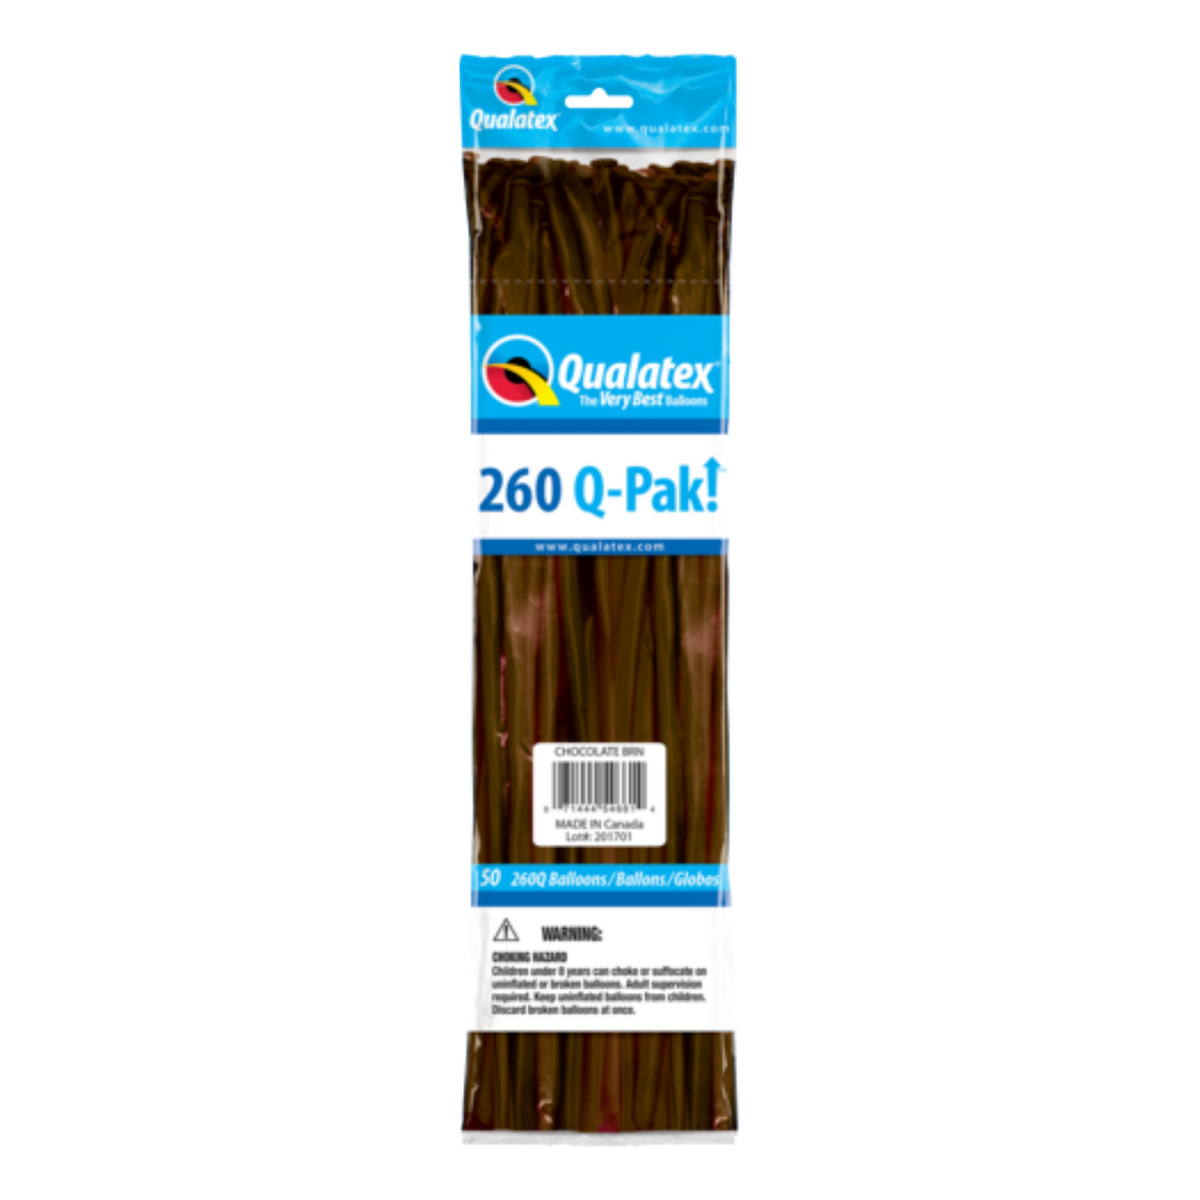 Qualatex 260 Q-Pak (50 pack) BROWN CHOCOLATE